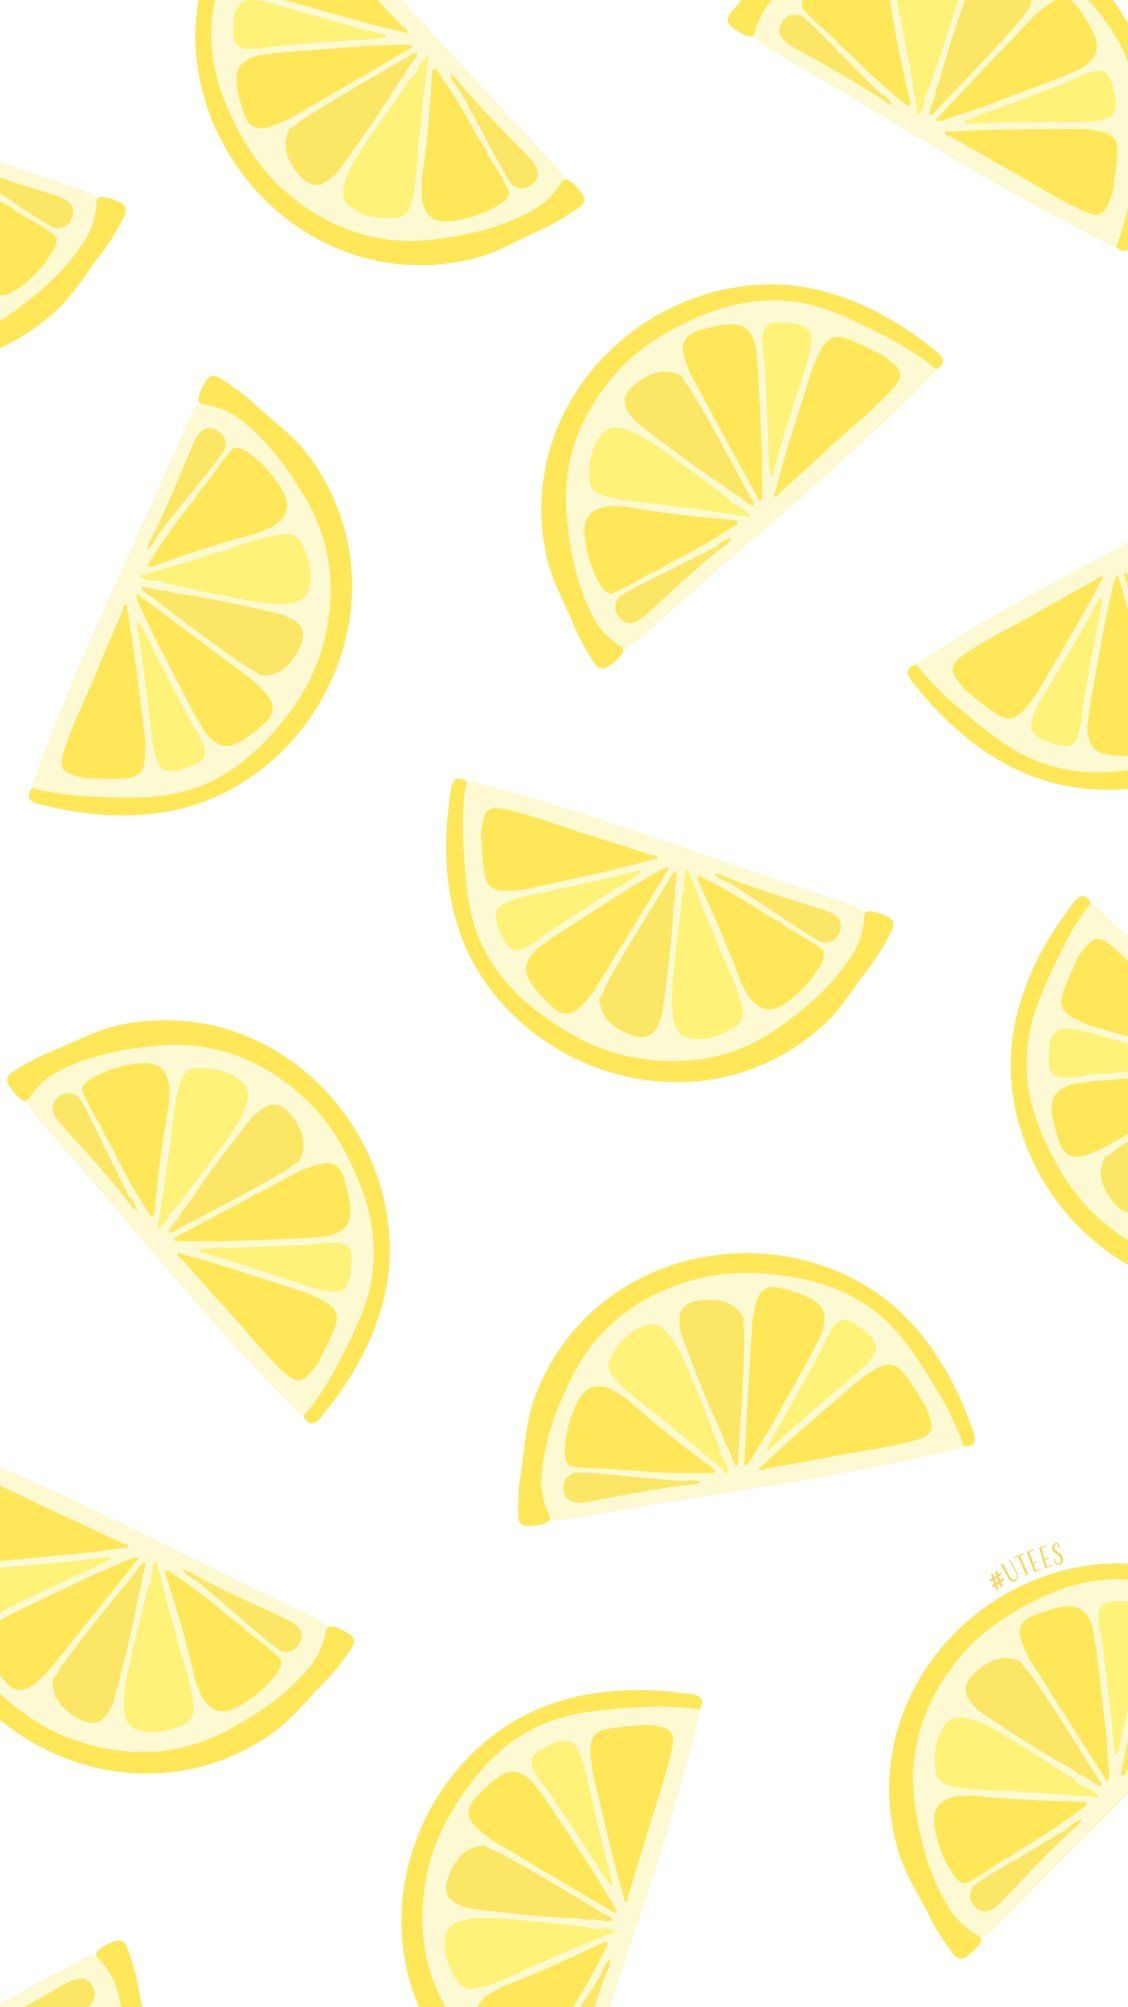 Lemon Love Iphone Backgrounds I Summer Phone Screensavers